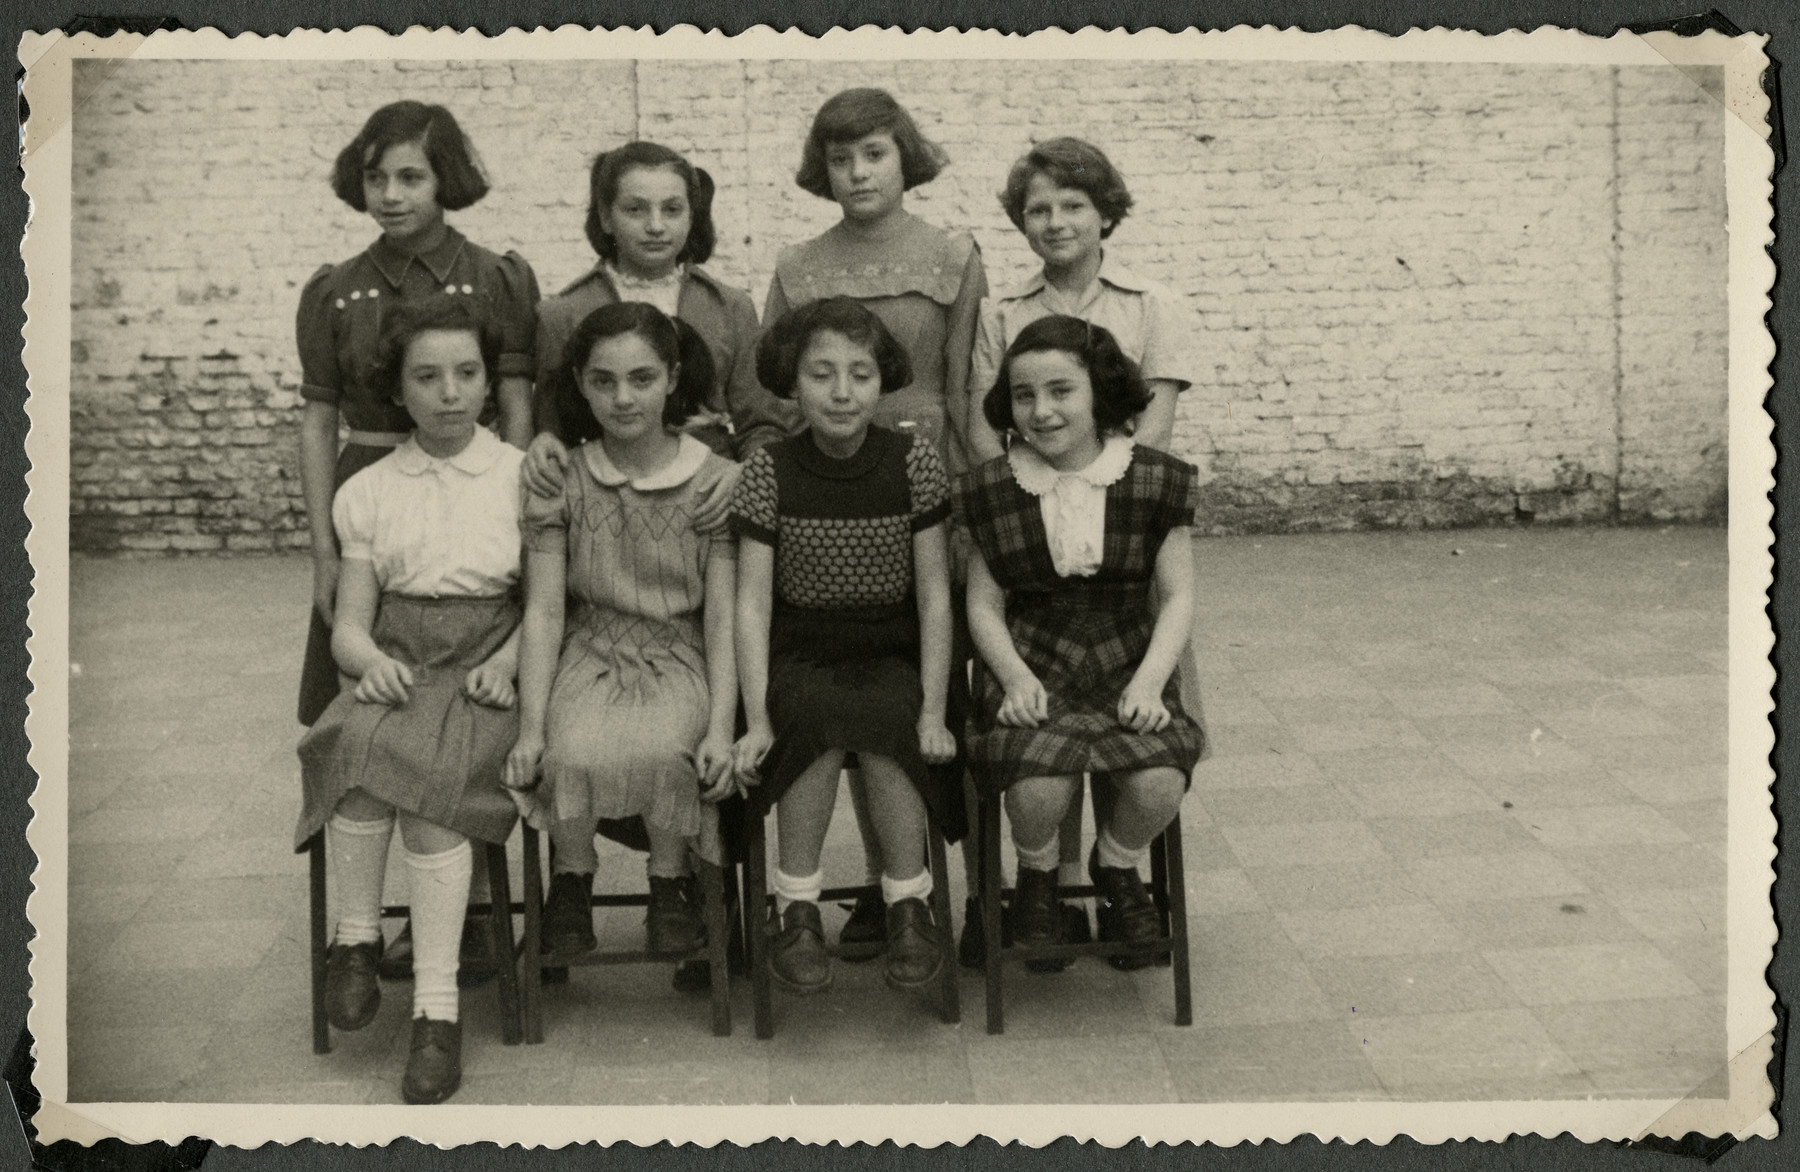 Group portrait of girls in the postwarTiefenbrunner children's home in Antwerp.  Pictured seated are Juliette (left) and Eva Goldman (second from left).  Standing left to right are Rutka Slonska, Renee Goldman, Marion Meyer and Sarah Cohen.